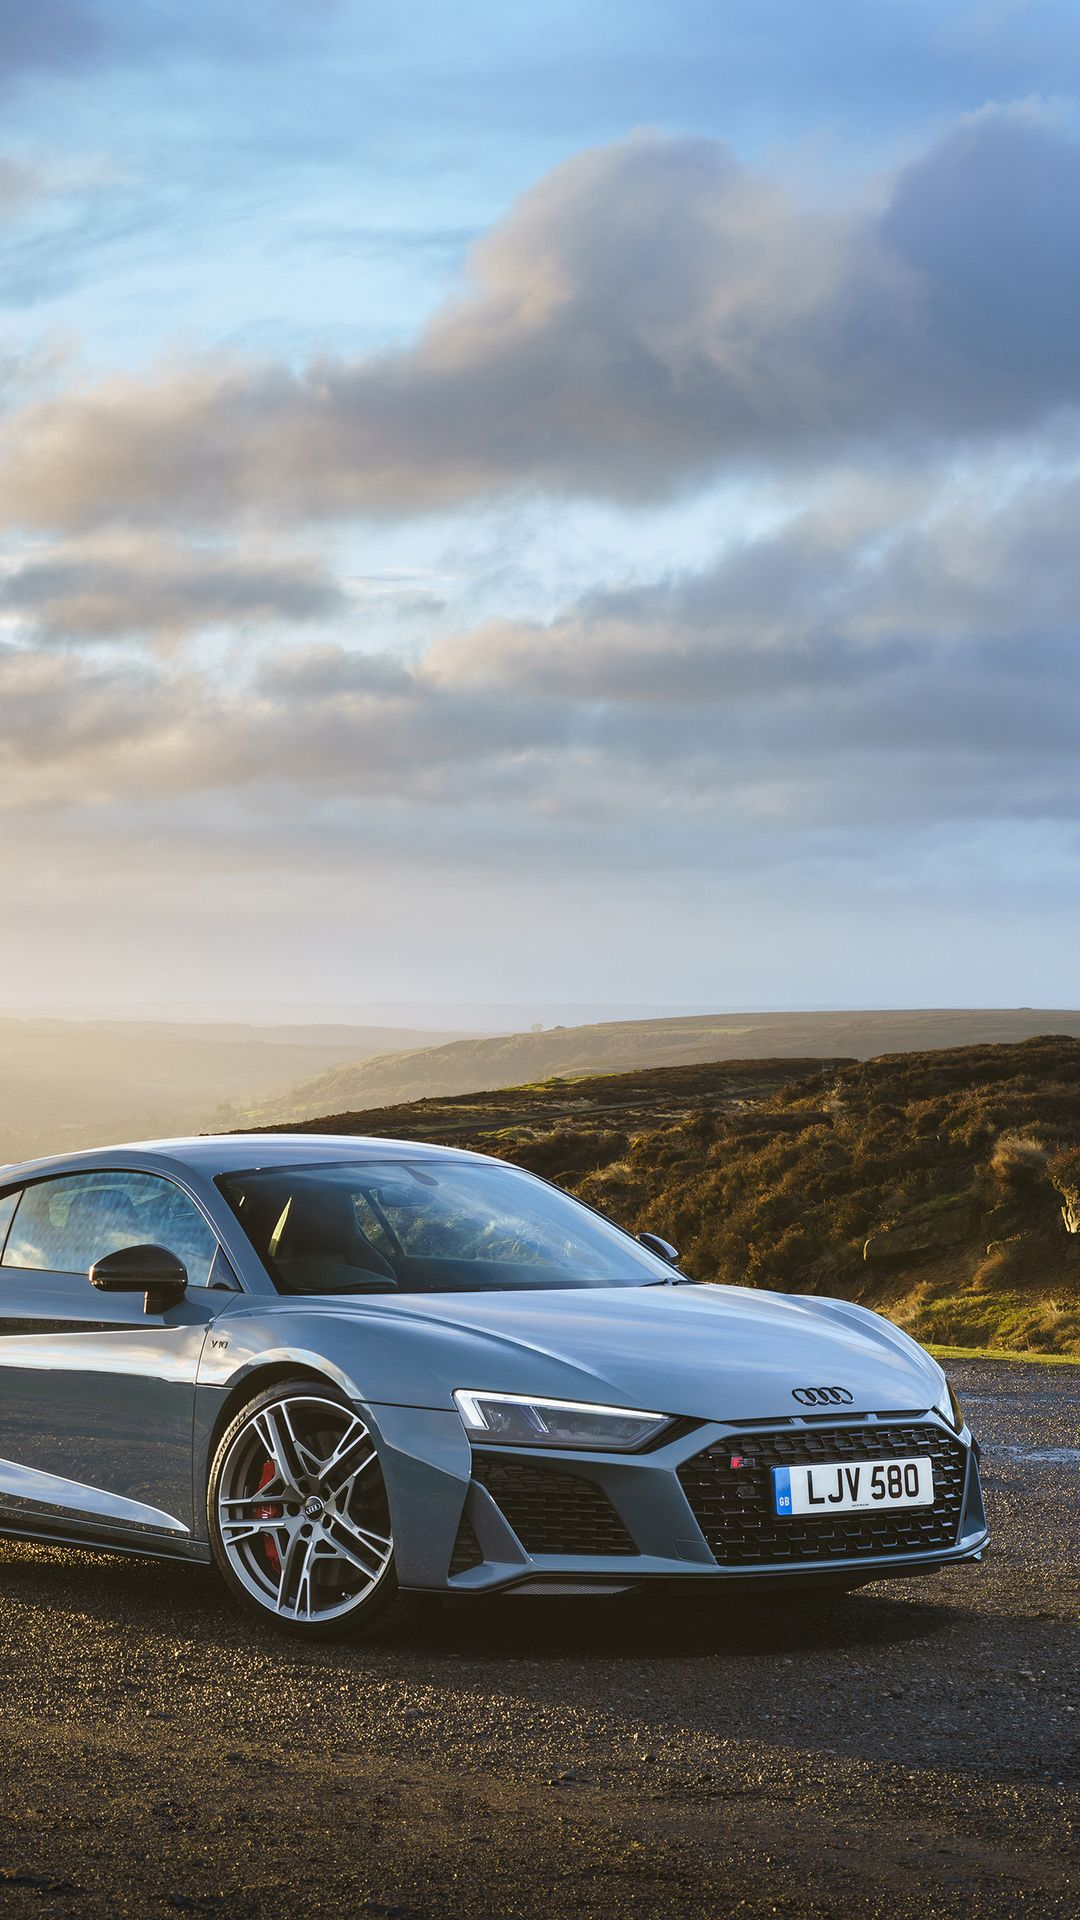 Hd wallpaper for backgrounds audi r8, car tuning audi r8 and concept car audi r8 wallpapers. Audi R8 V10 Performance 2019 4k Audi R8 V10 Audi Audi R8 Wallpaper